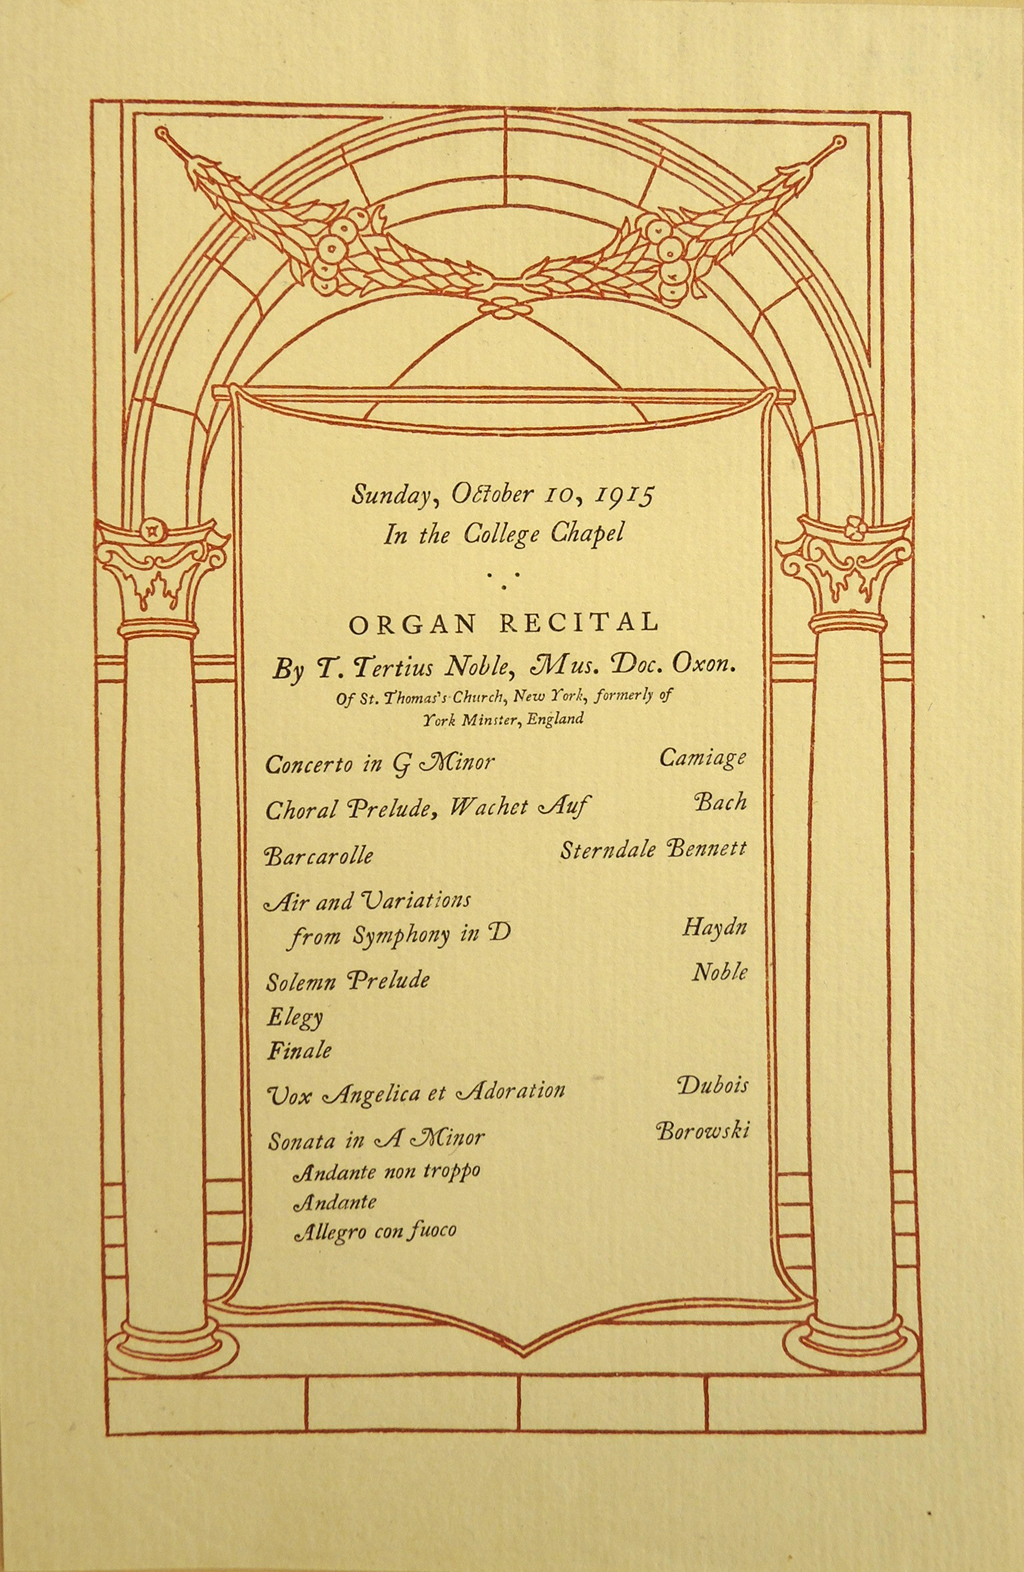 Program for Organ Recital (October 10, 1915). Printing by The Merrymount Press.